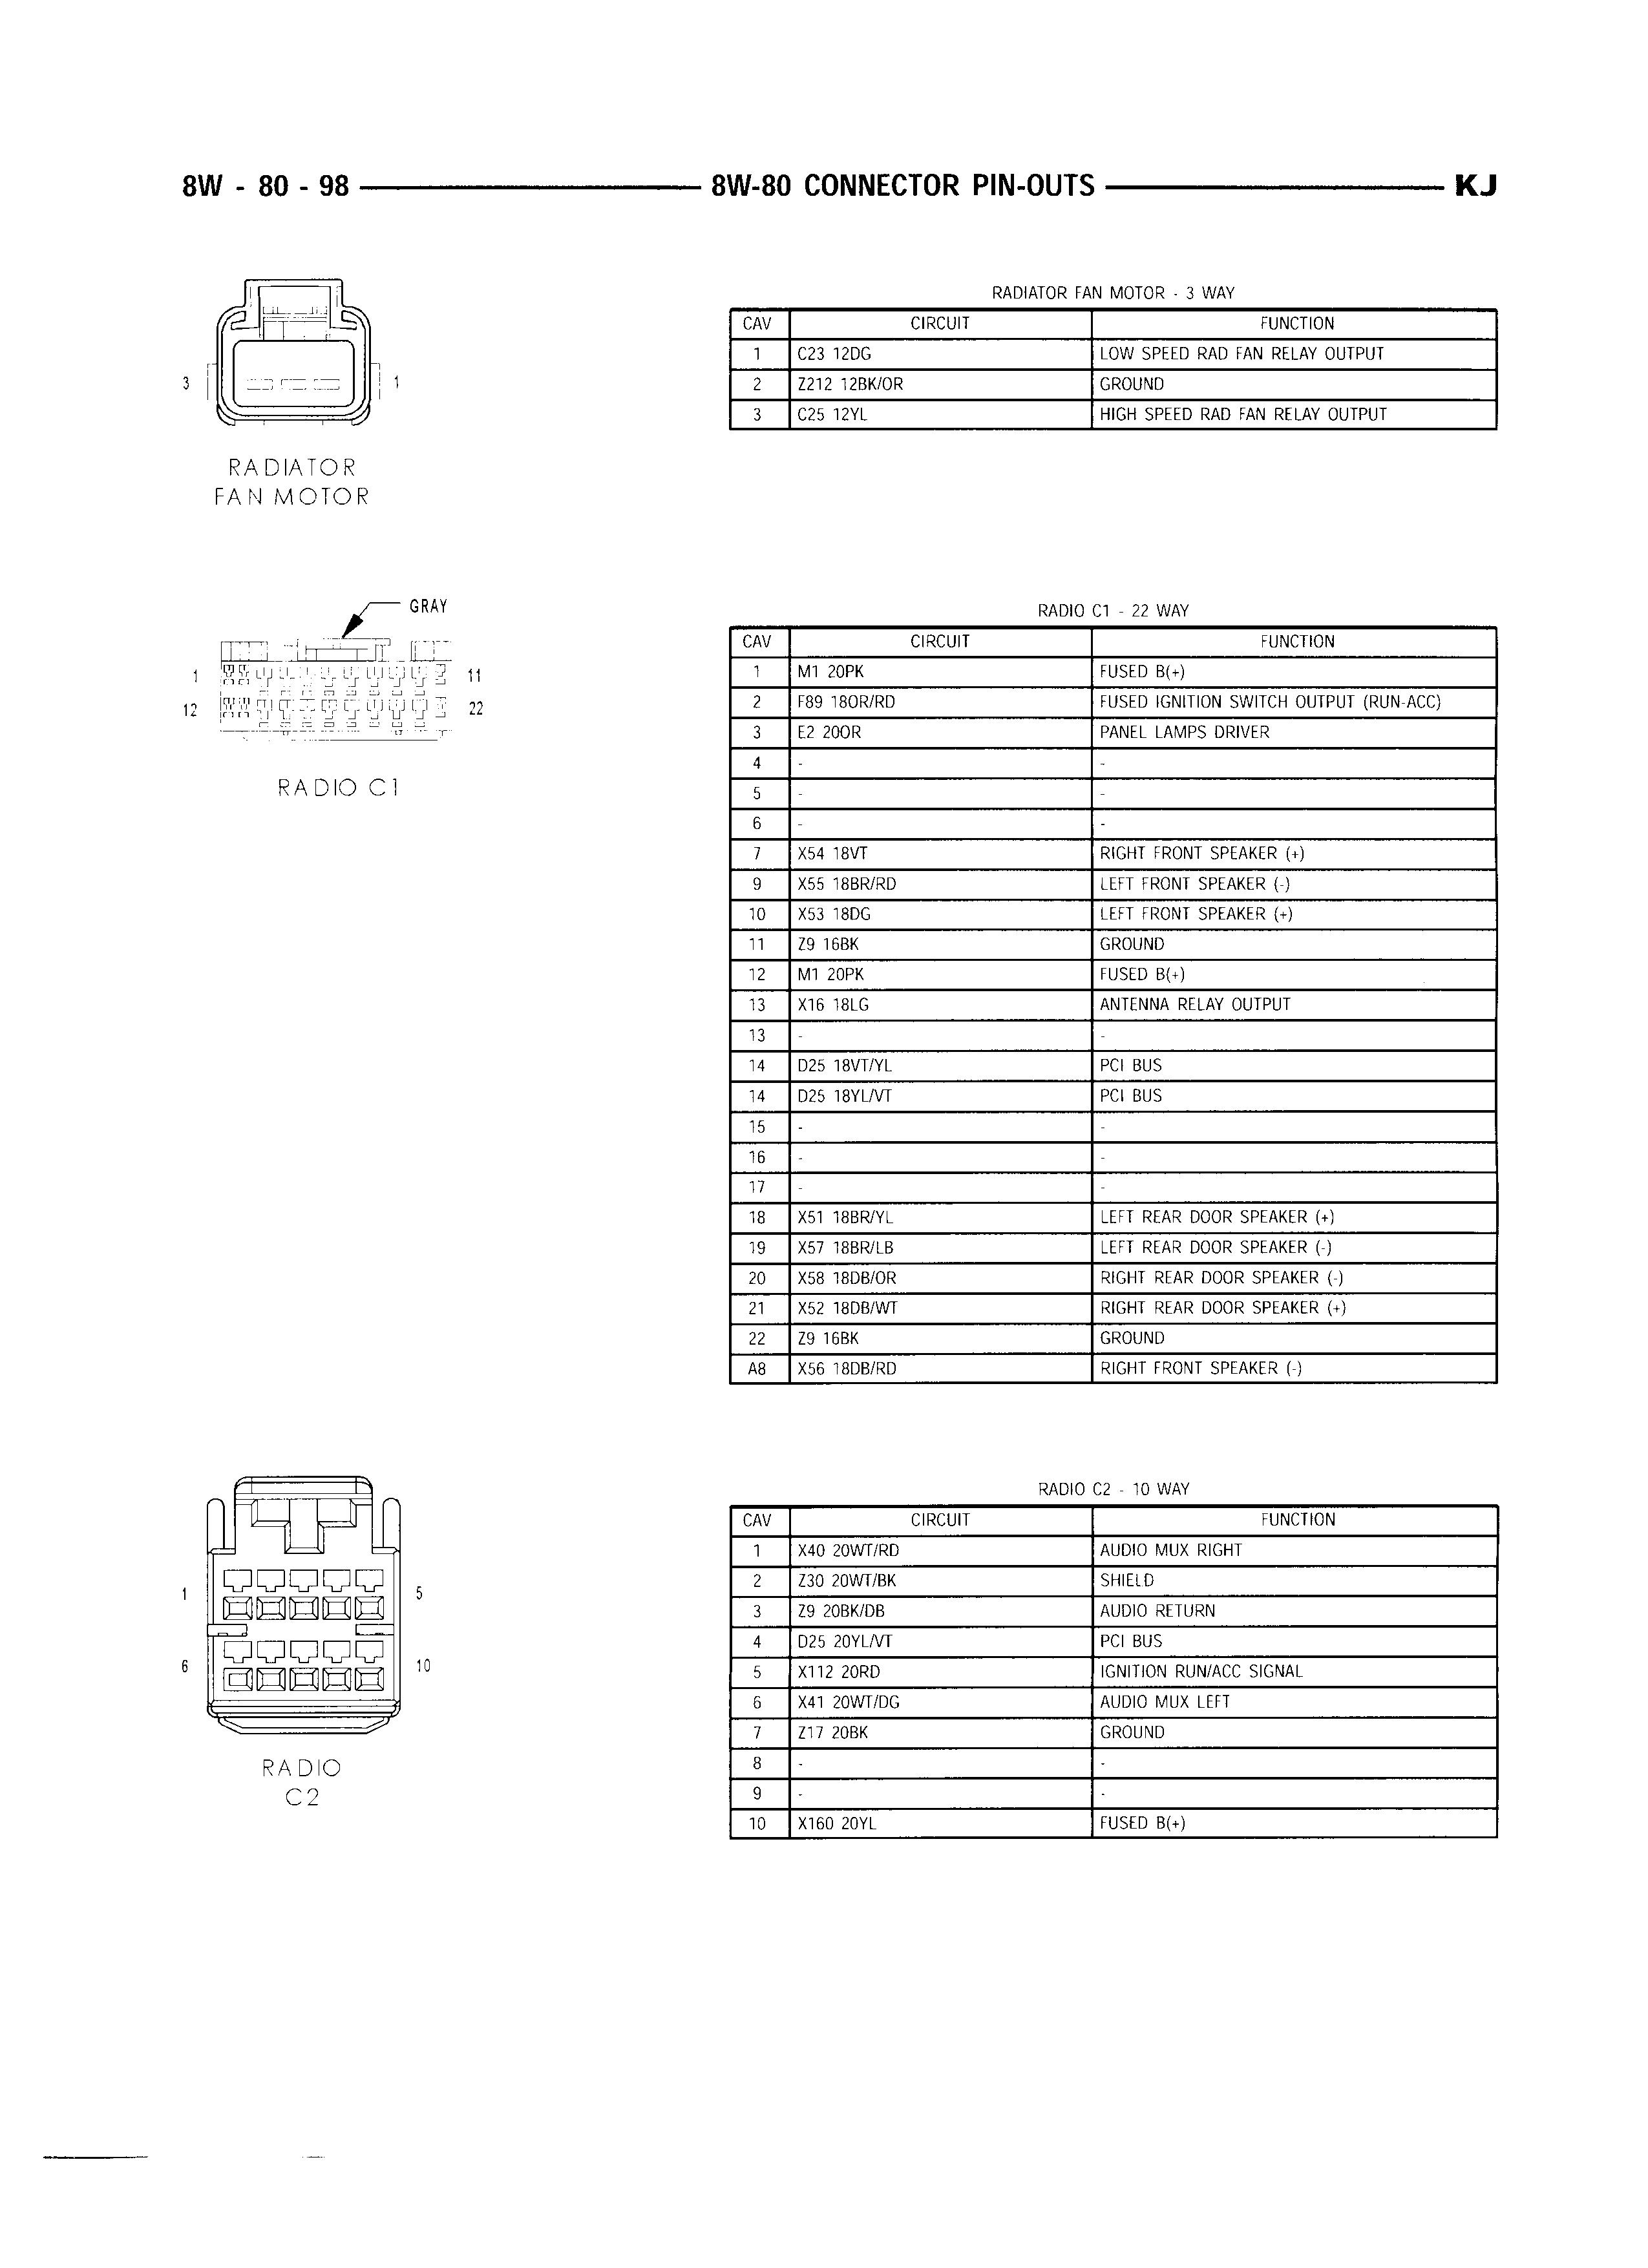 Stereo Wiring Diagram For 2002 Hyundai Accent